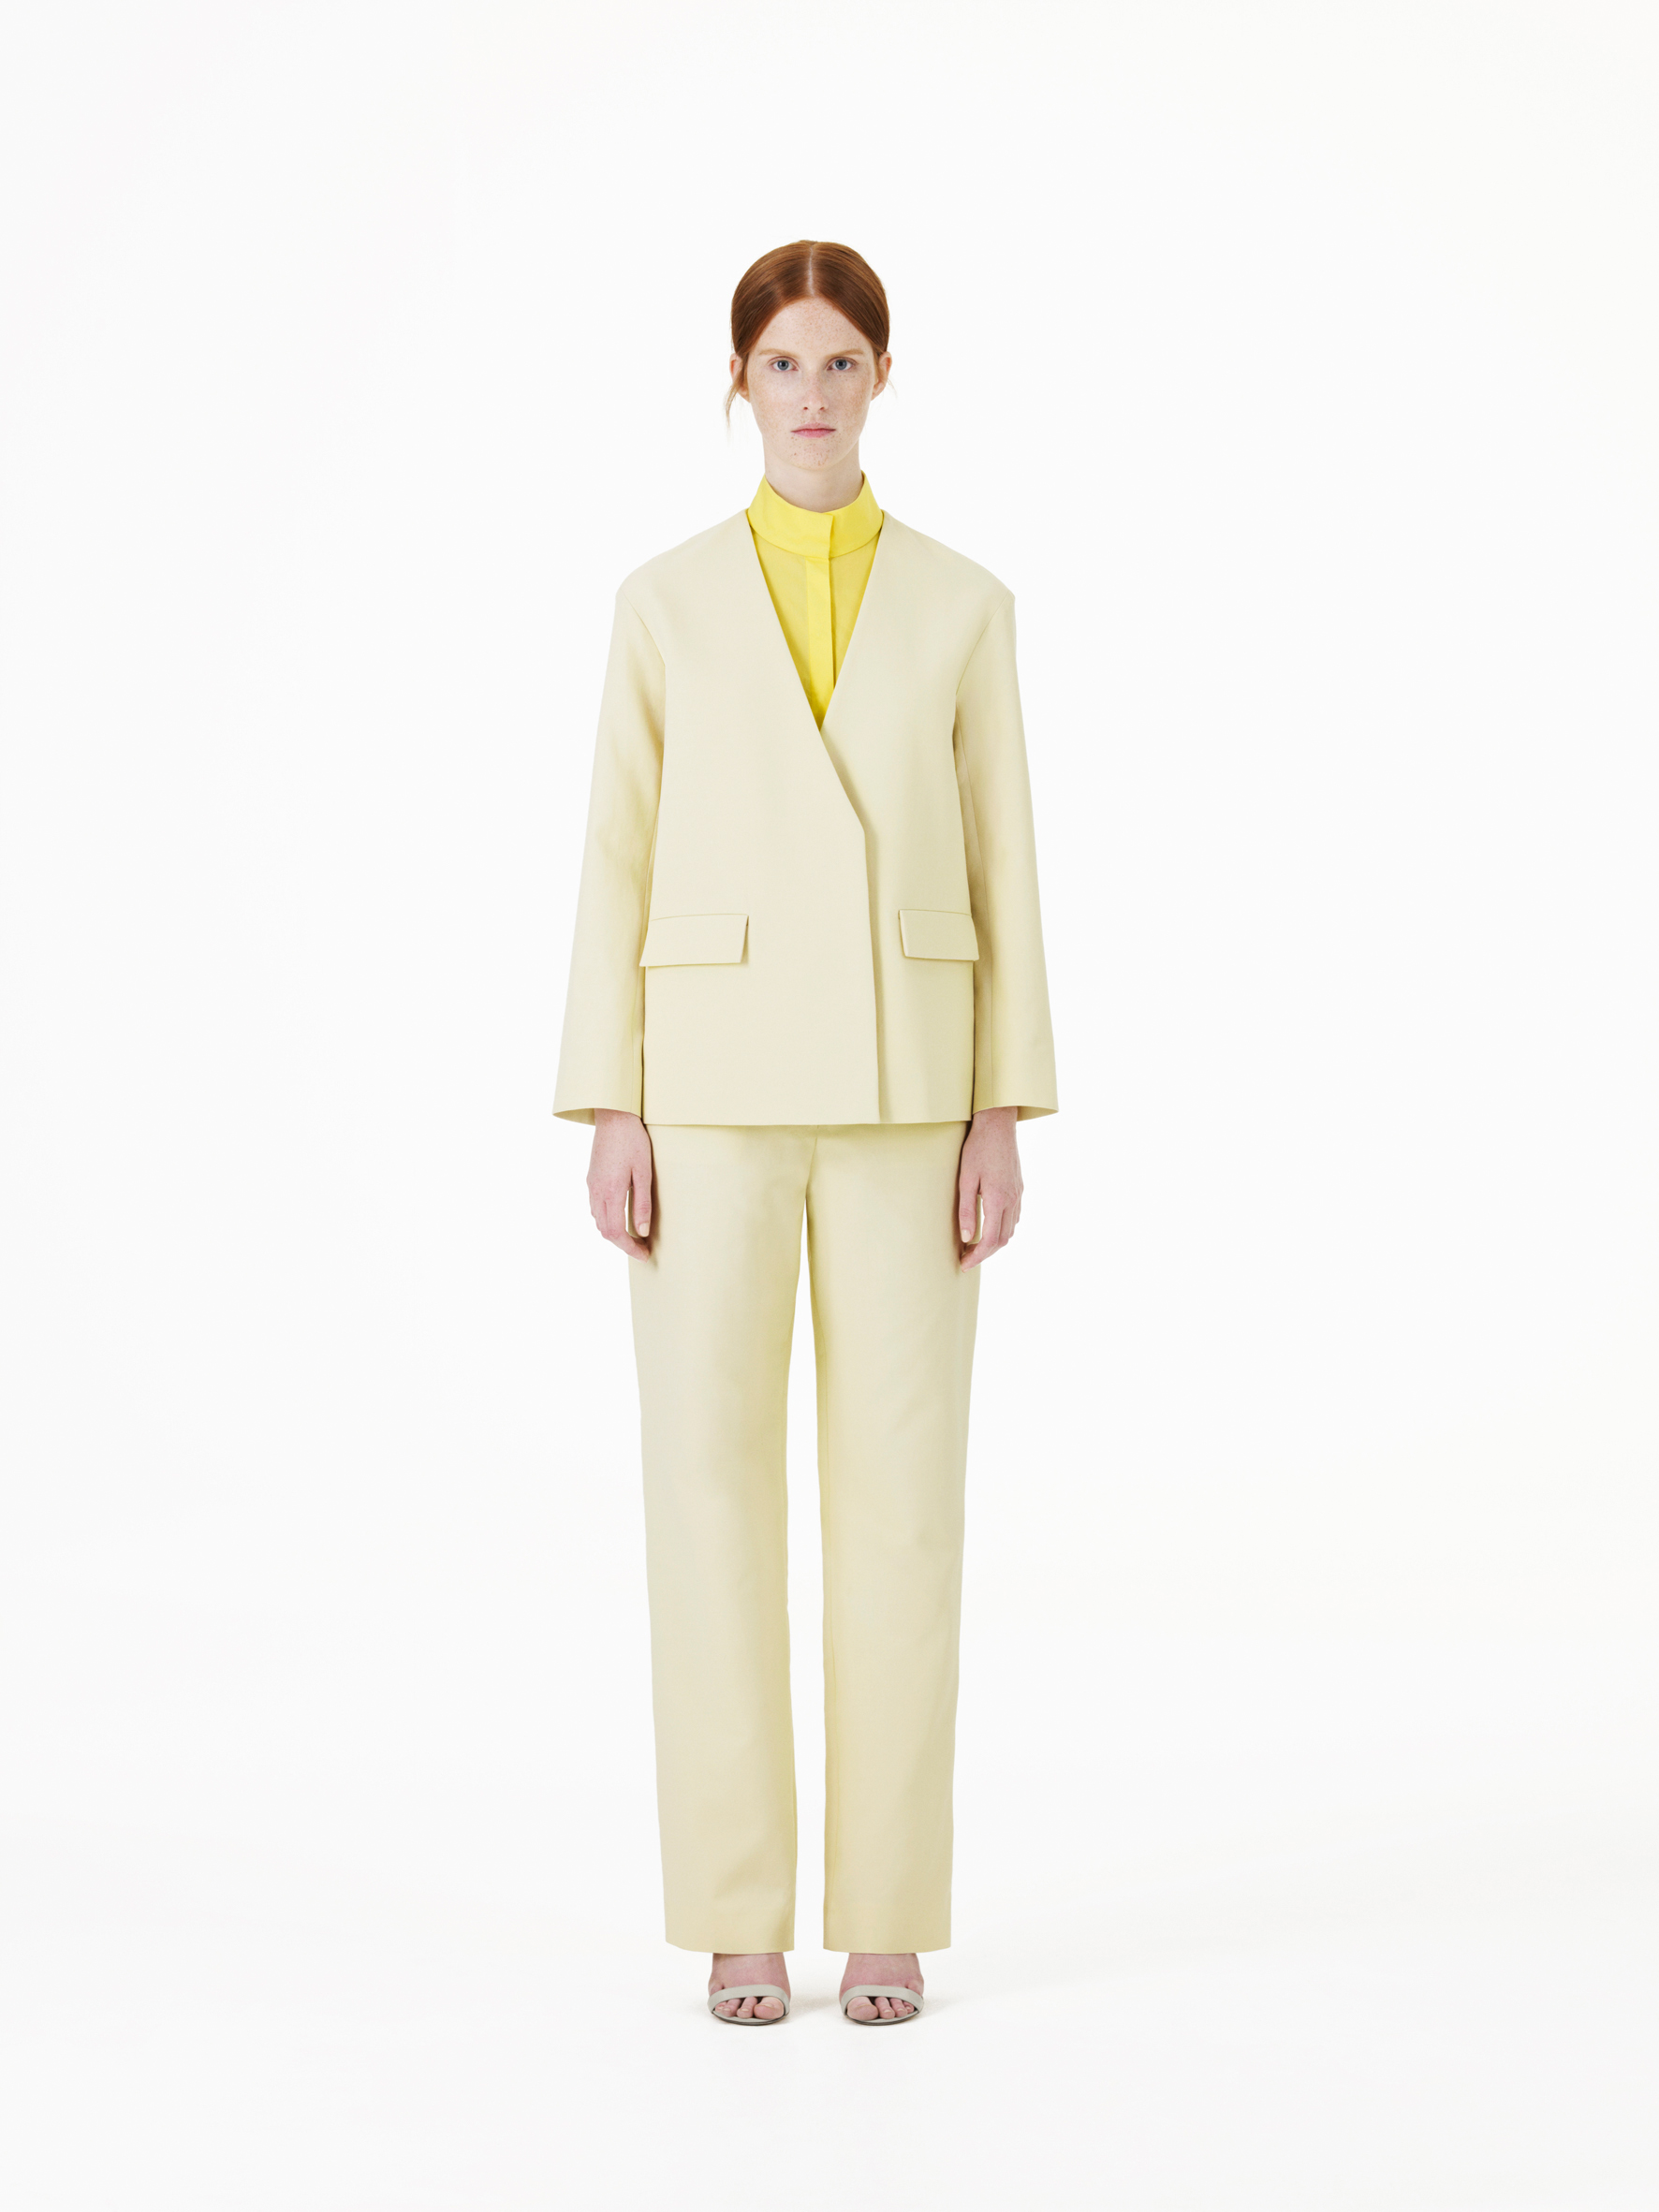 COS_SS14_WOMENS_22a_lowres